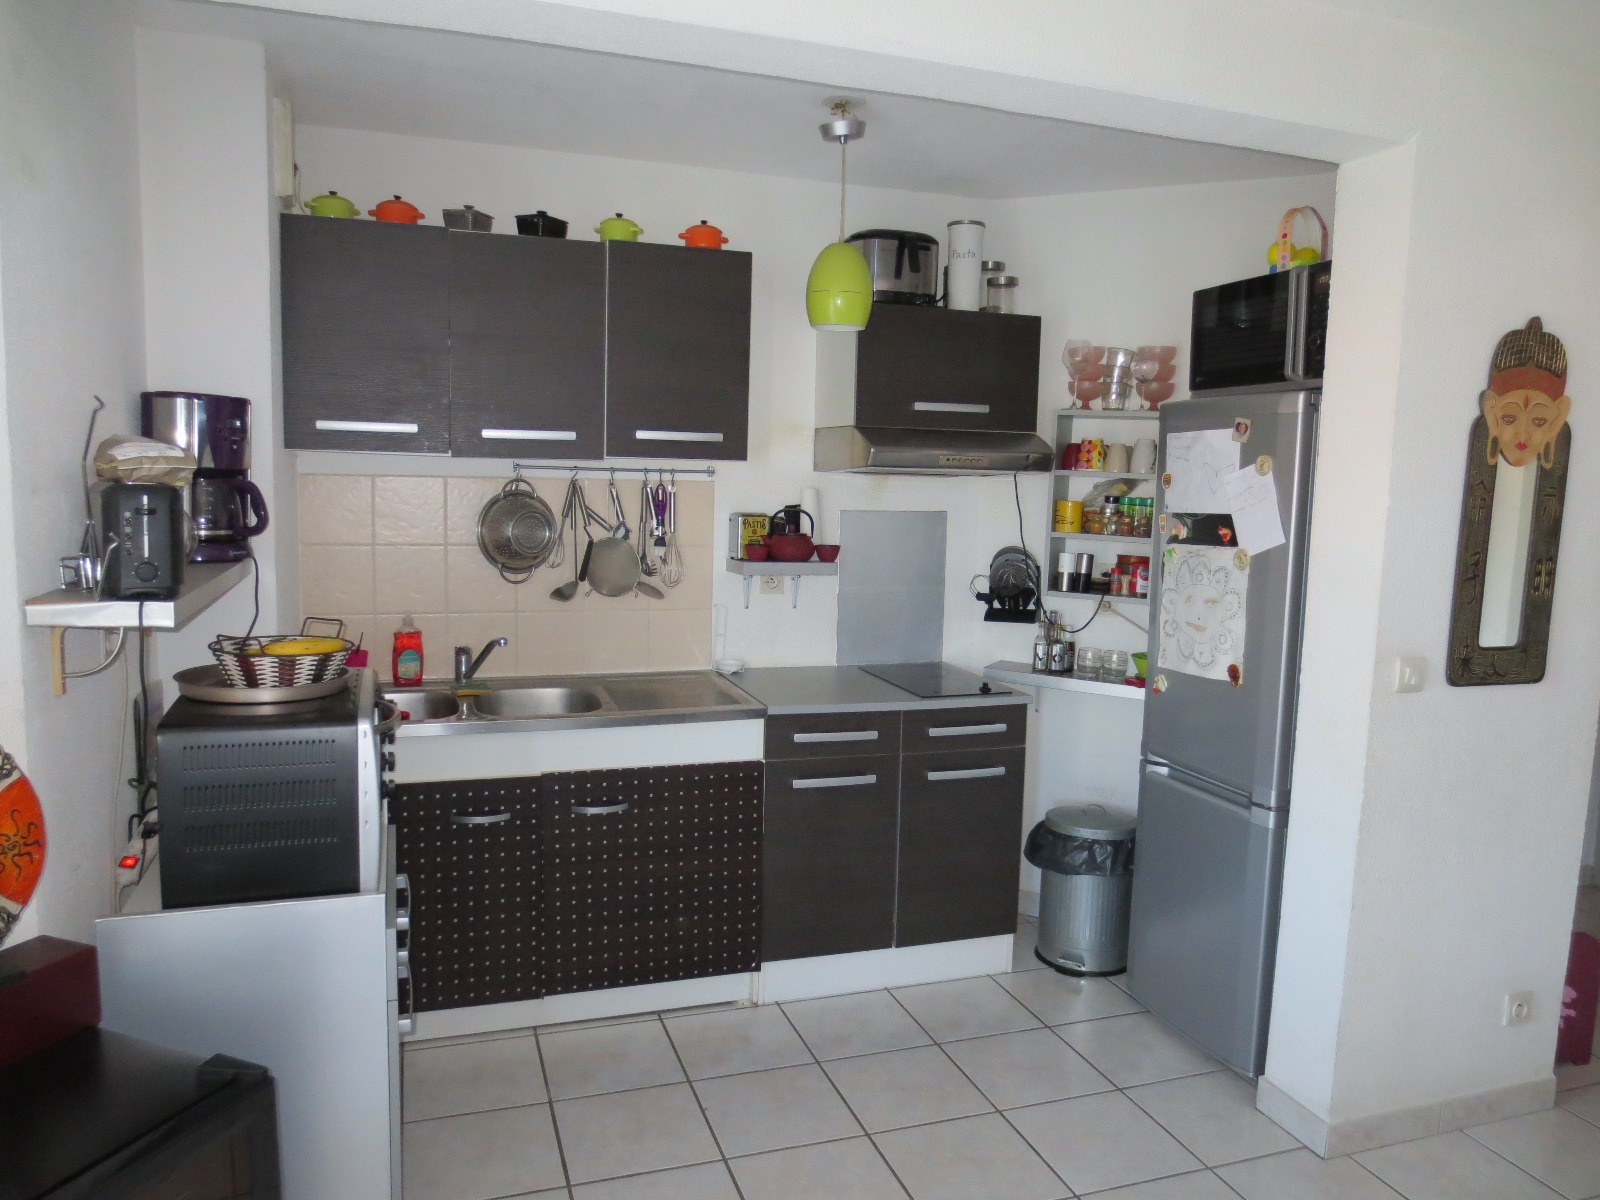 Vente saint est ve appartement t3 avec terrasse garage for Garage st esteve